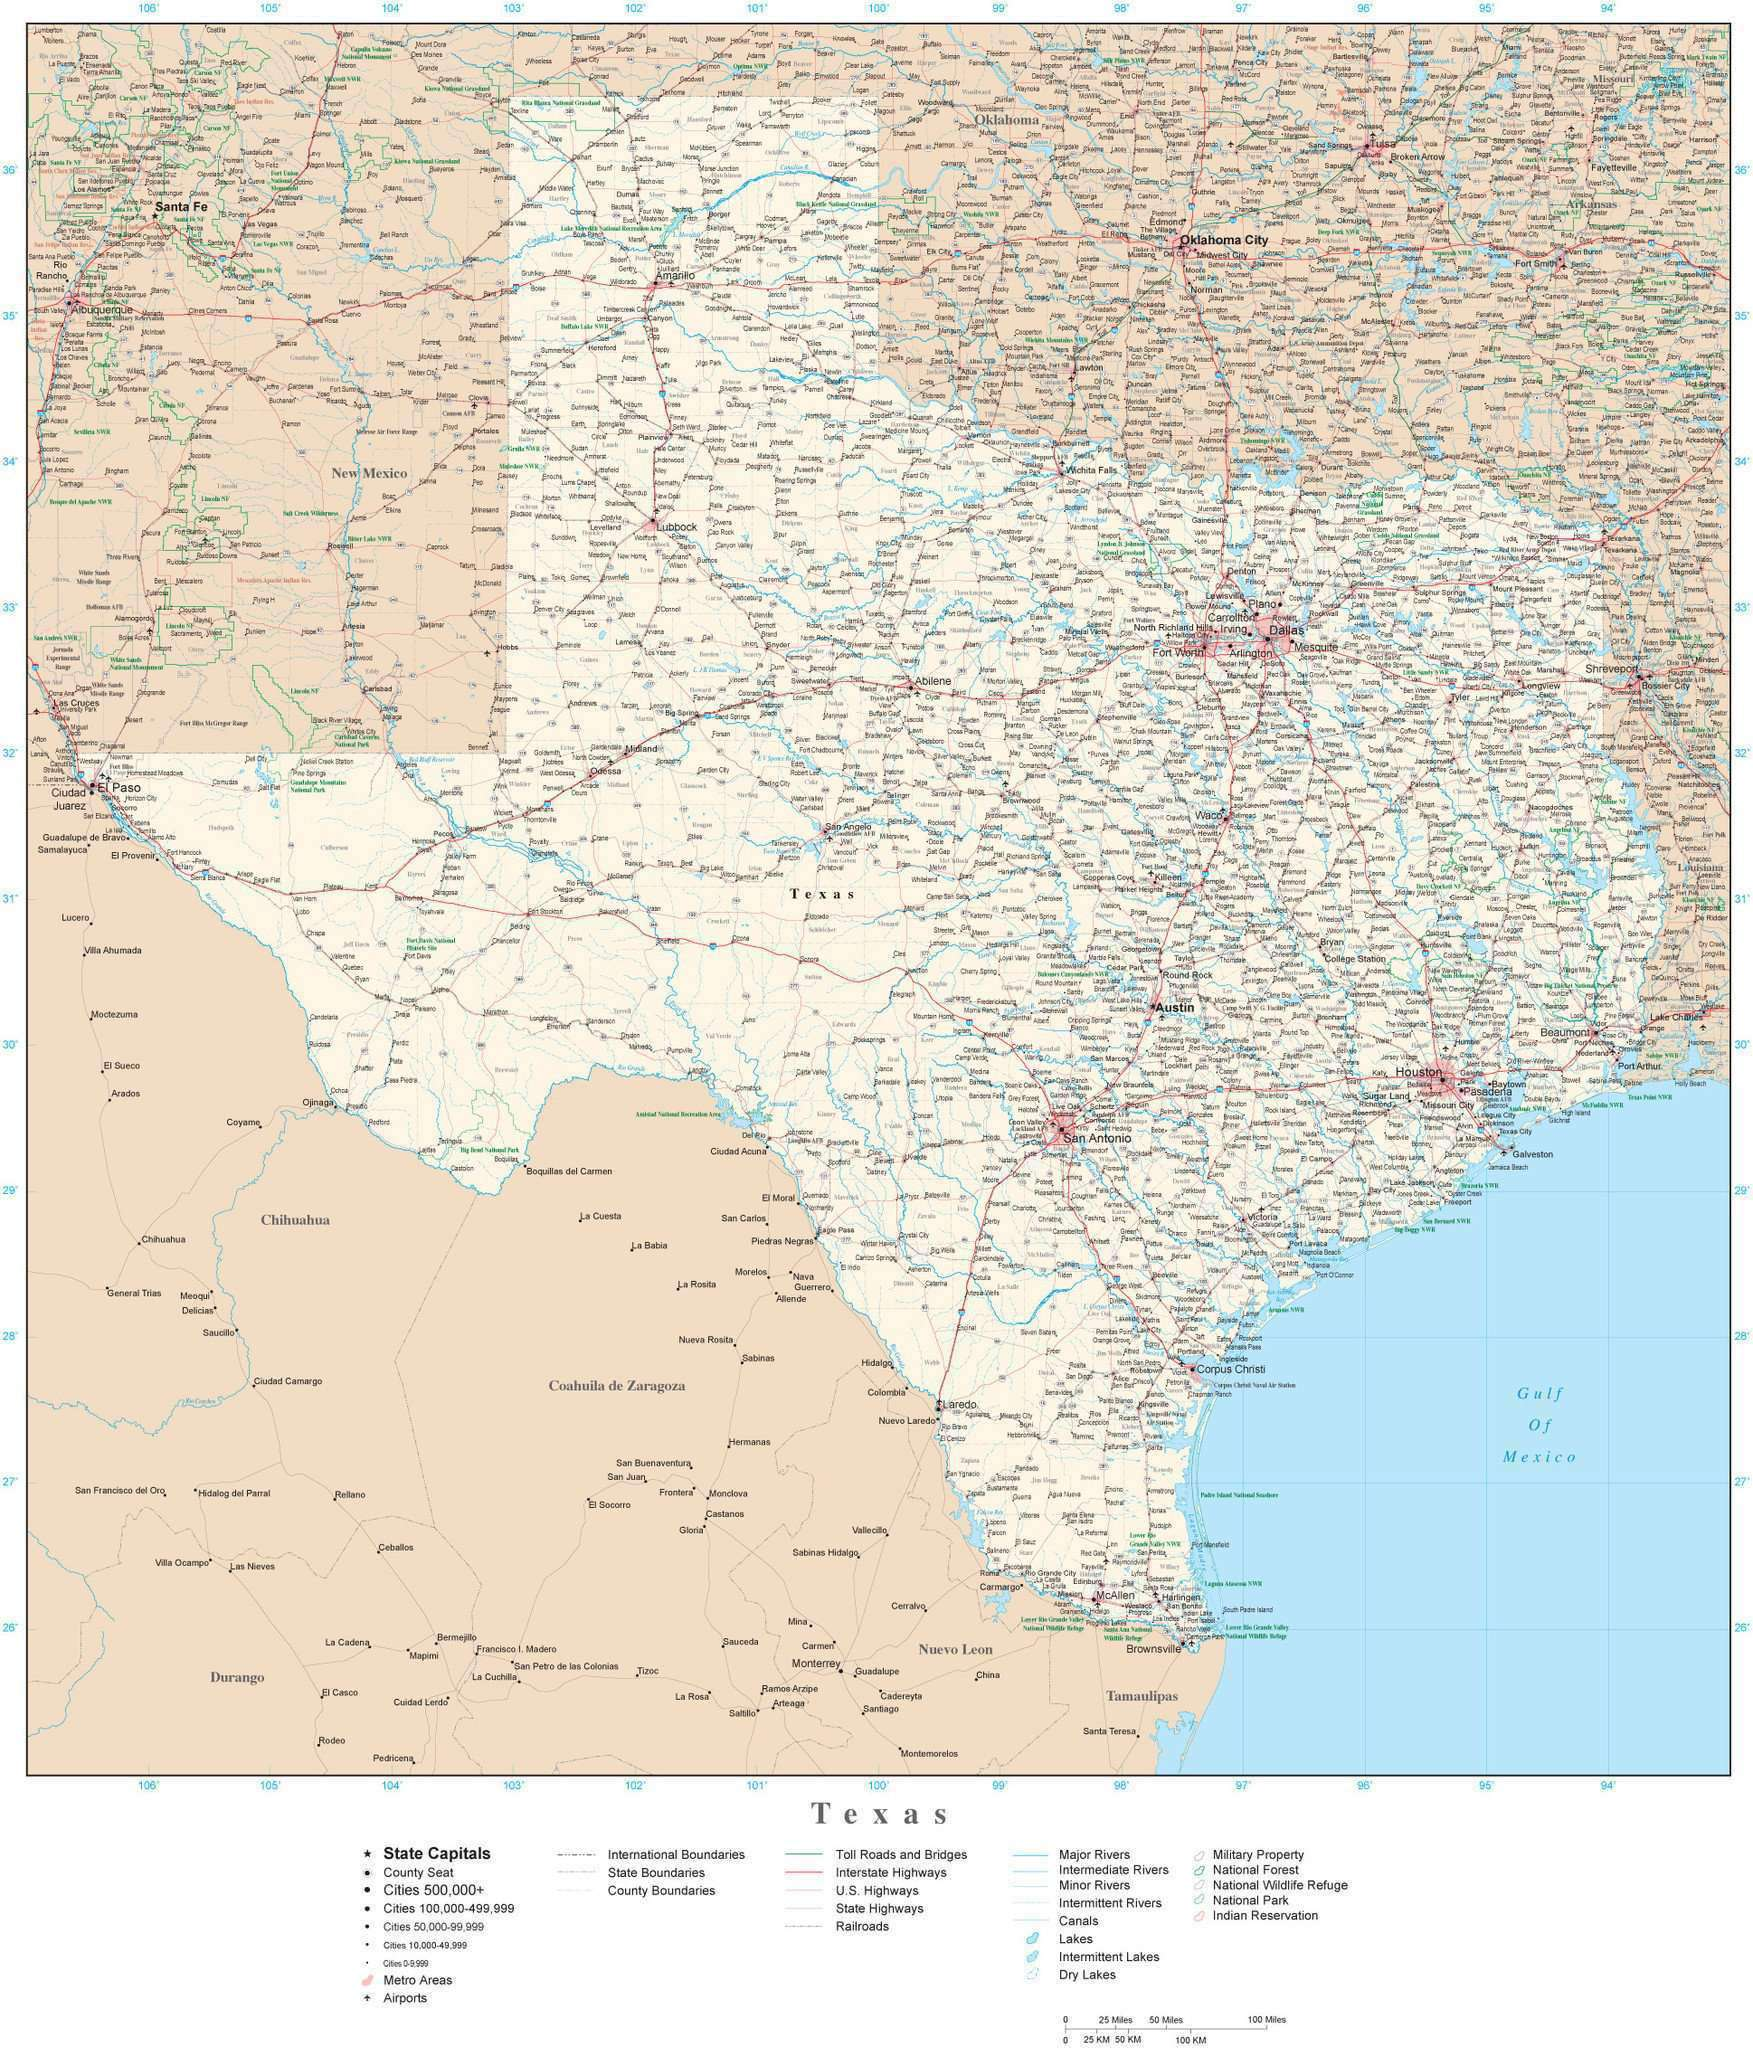 Map Of Texas Showing Counties.Detailed Texas Digital Map With County Boundaries Cities Highways National Parks And More